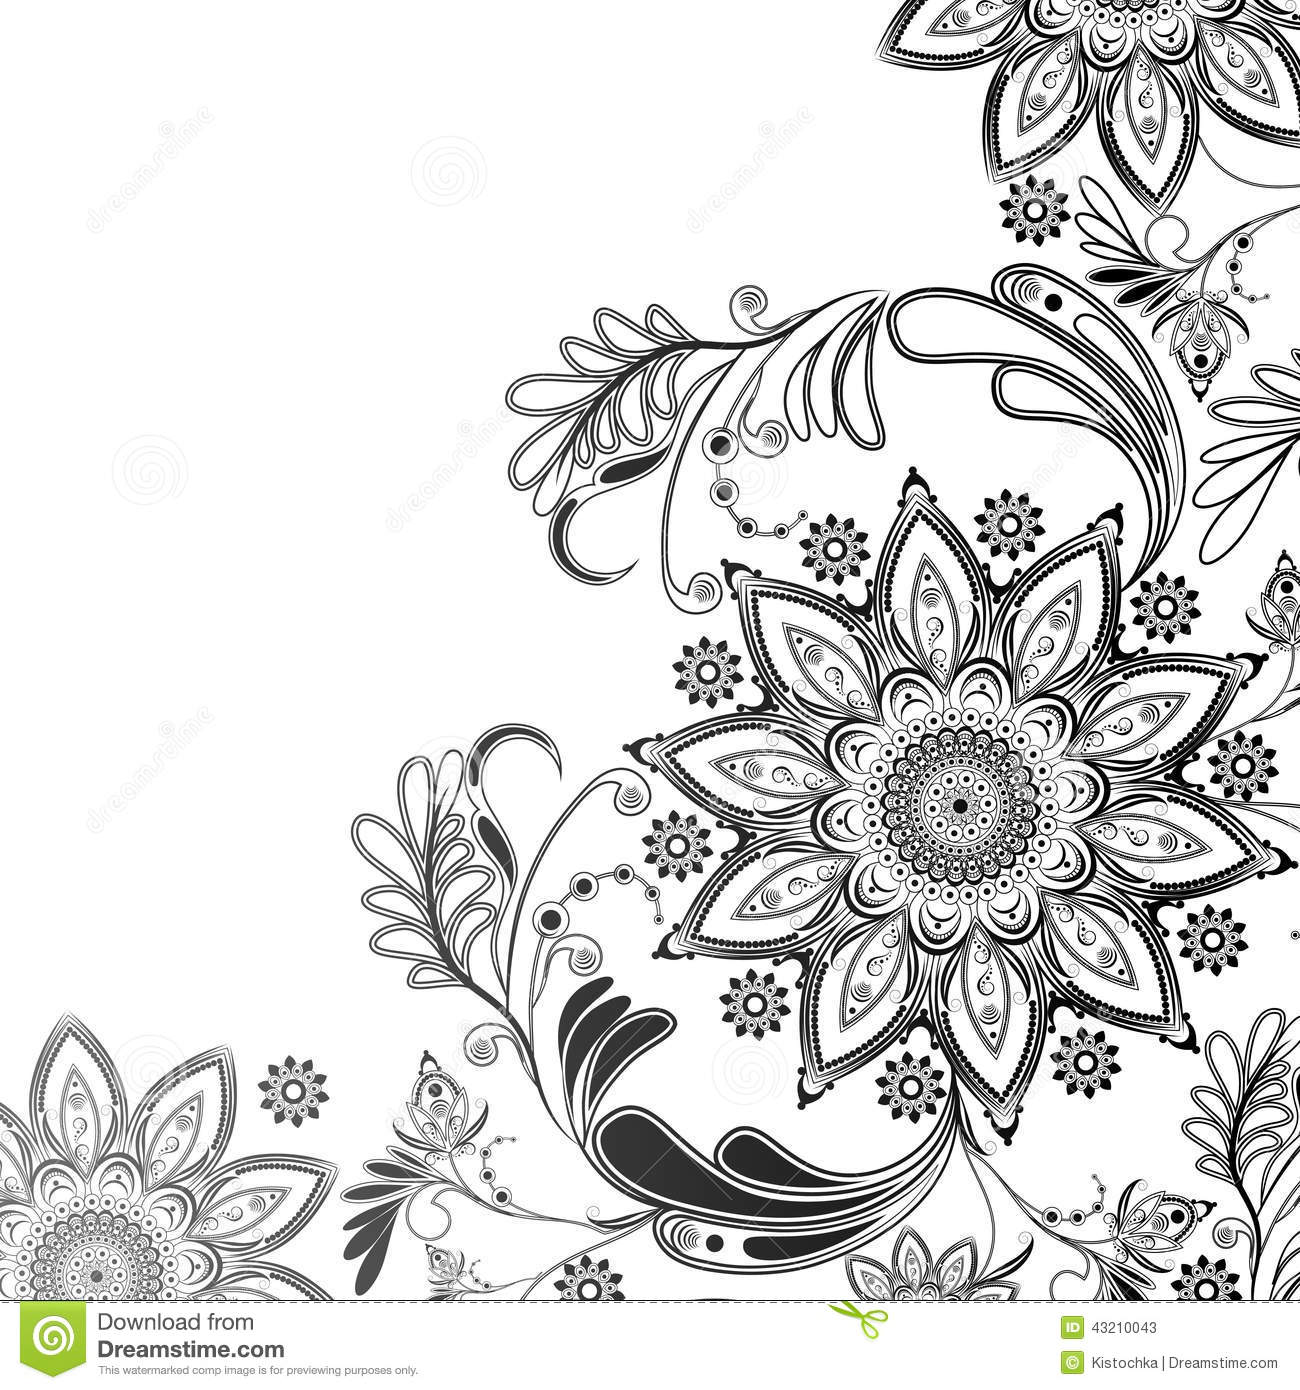 Eastern motif in black and white